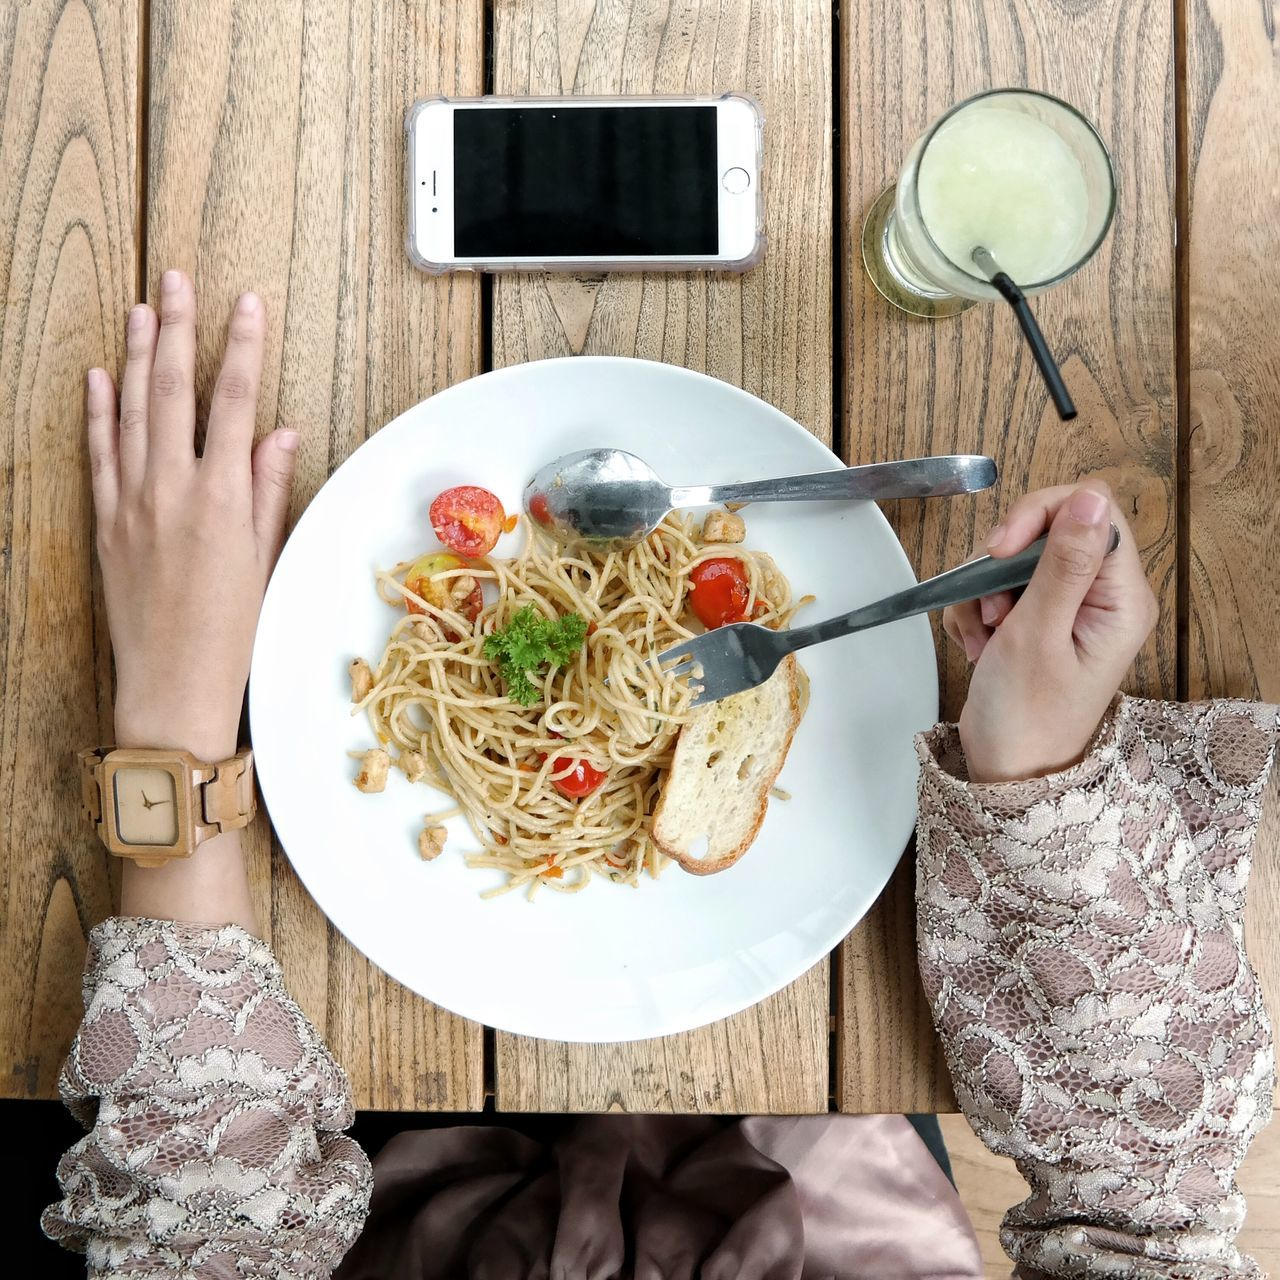 Human Body Part Human Hand One Person Holding People One Woman Only Table Food And Drink Food Adult Adults Only Plate Indoors  Only Women Directly Above Healthy Eating Italian Food Fork Real People Women On The Table Flatlay EyeEm Best Shots EyeEmNewHere Eyeemphoto